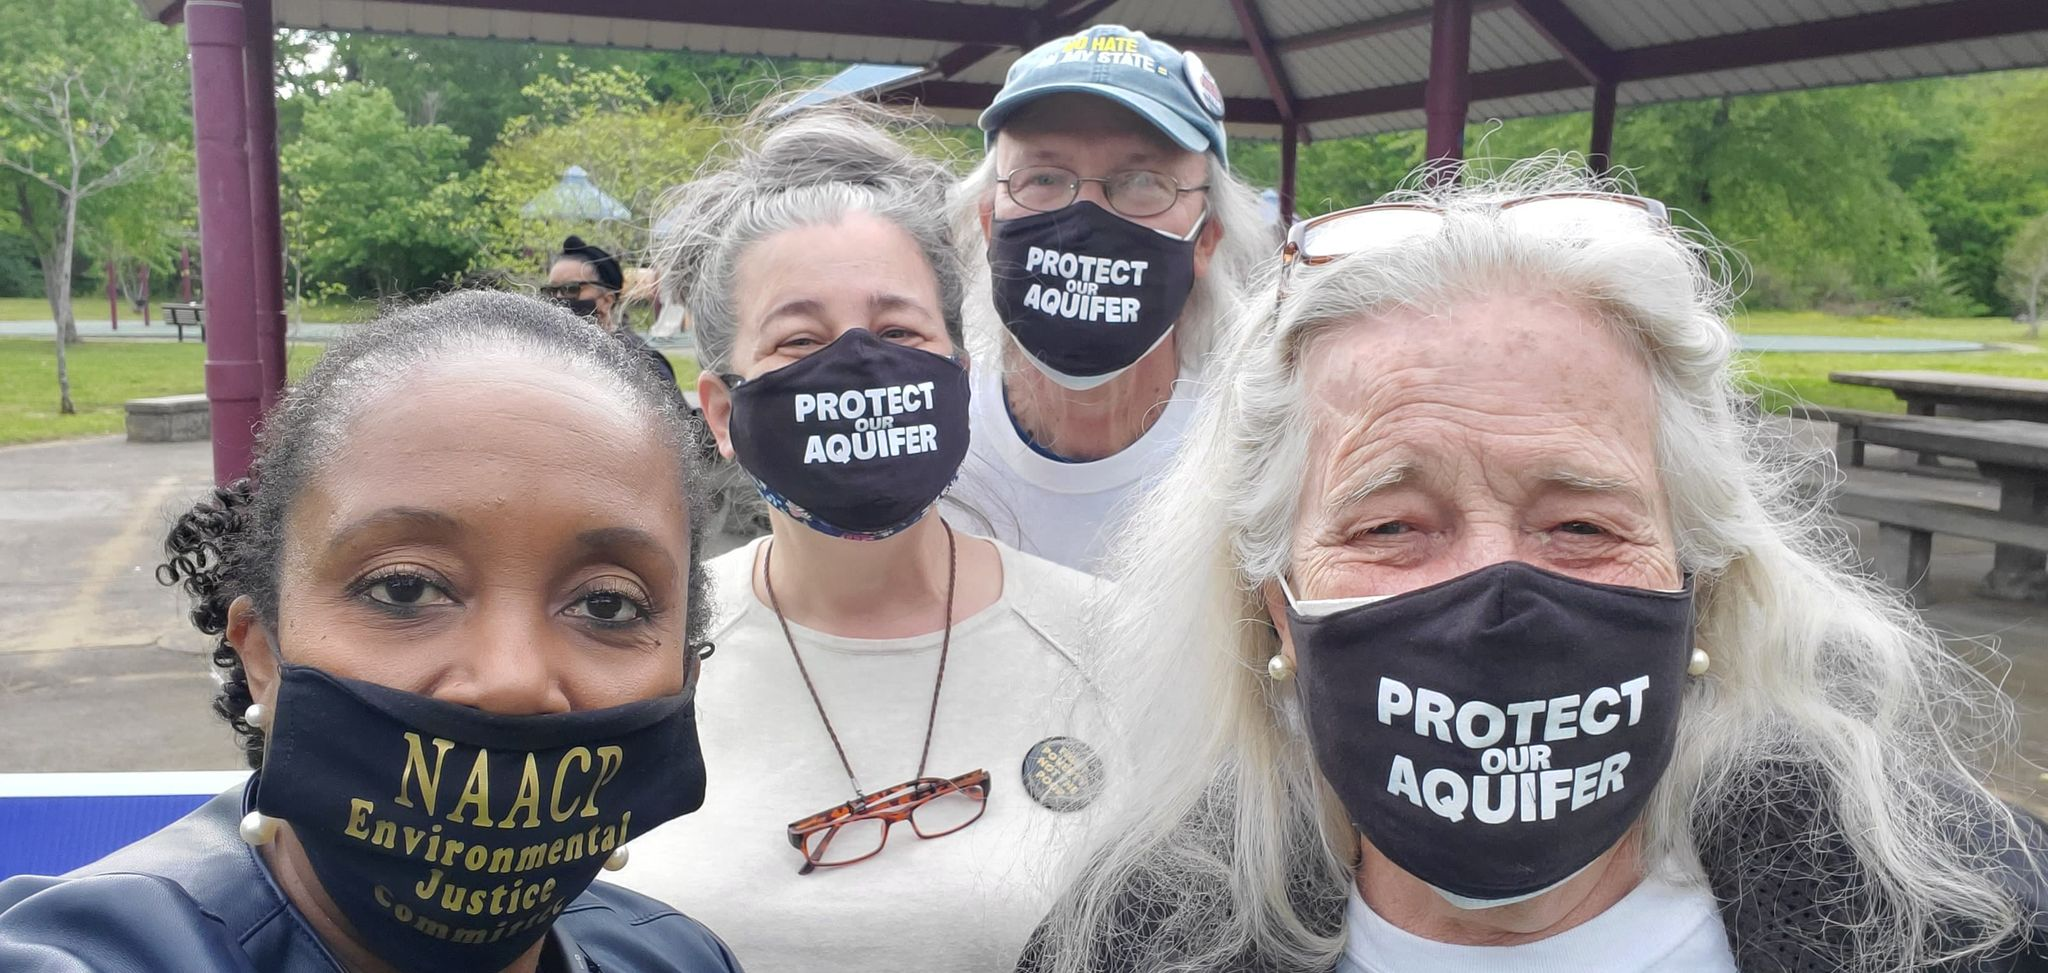 Memphis has the Power Organizer Pearl Eva Walker gathers with members of the Protect Our Aquifer group at a rally against the Byhalia Pipeline (Photo: Pearl Eva Walker)